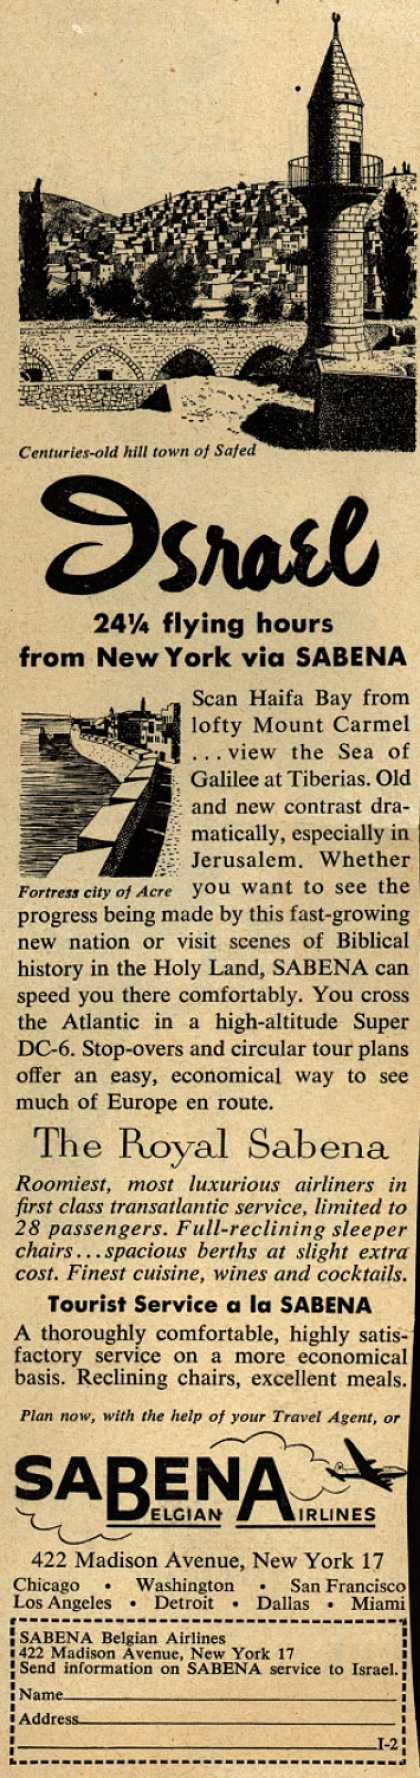 Sabena Belgian Airline's Israel – Israel 24 1/4 flying hours from New York via SABENA (1954)